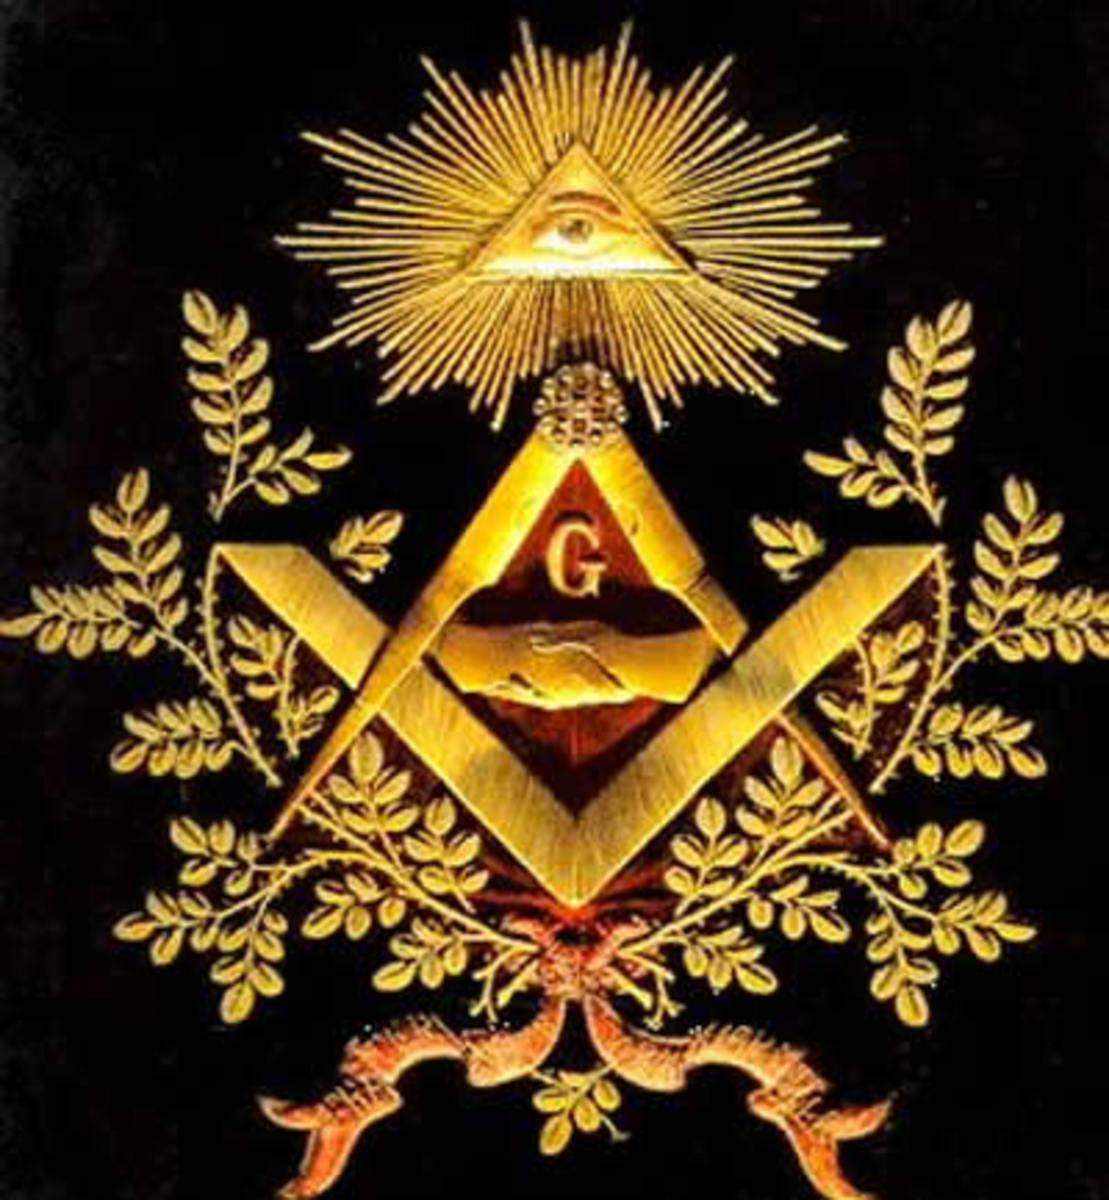 Illuminati, Freemasons and other Secret Societies use the Hegelian Dialectic extensively